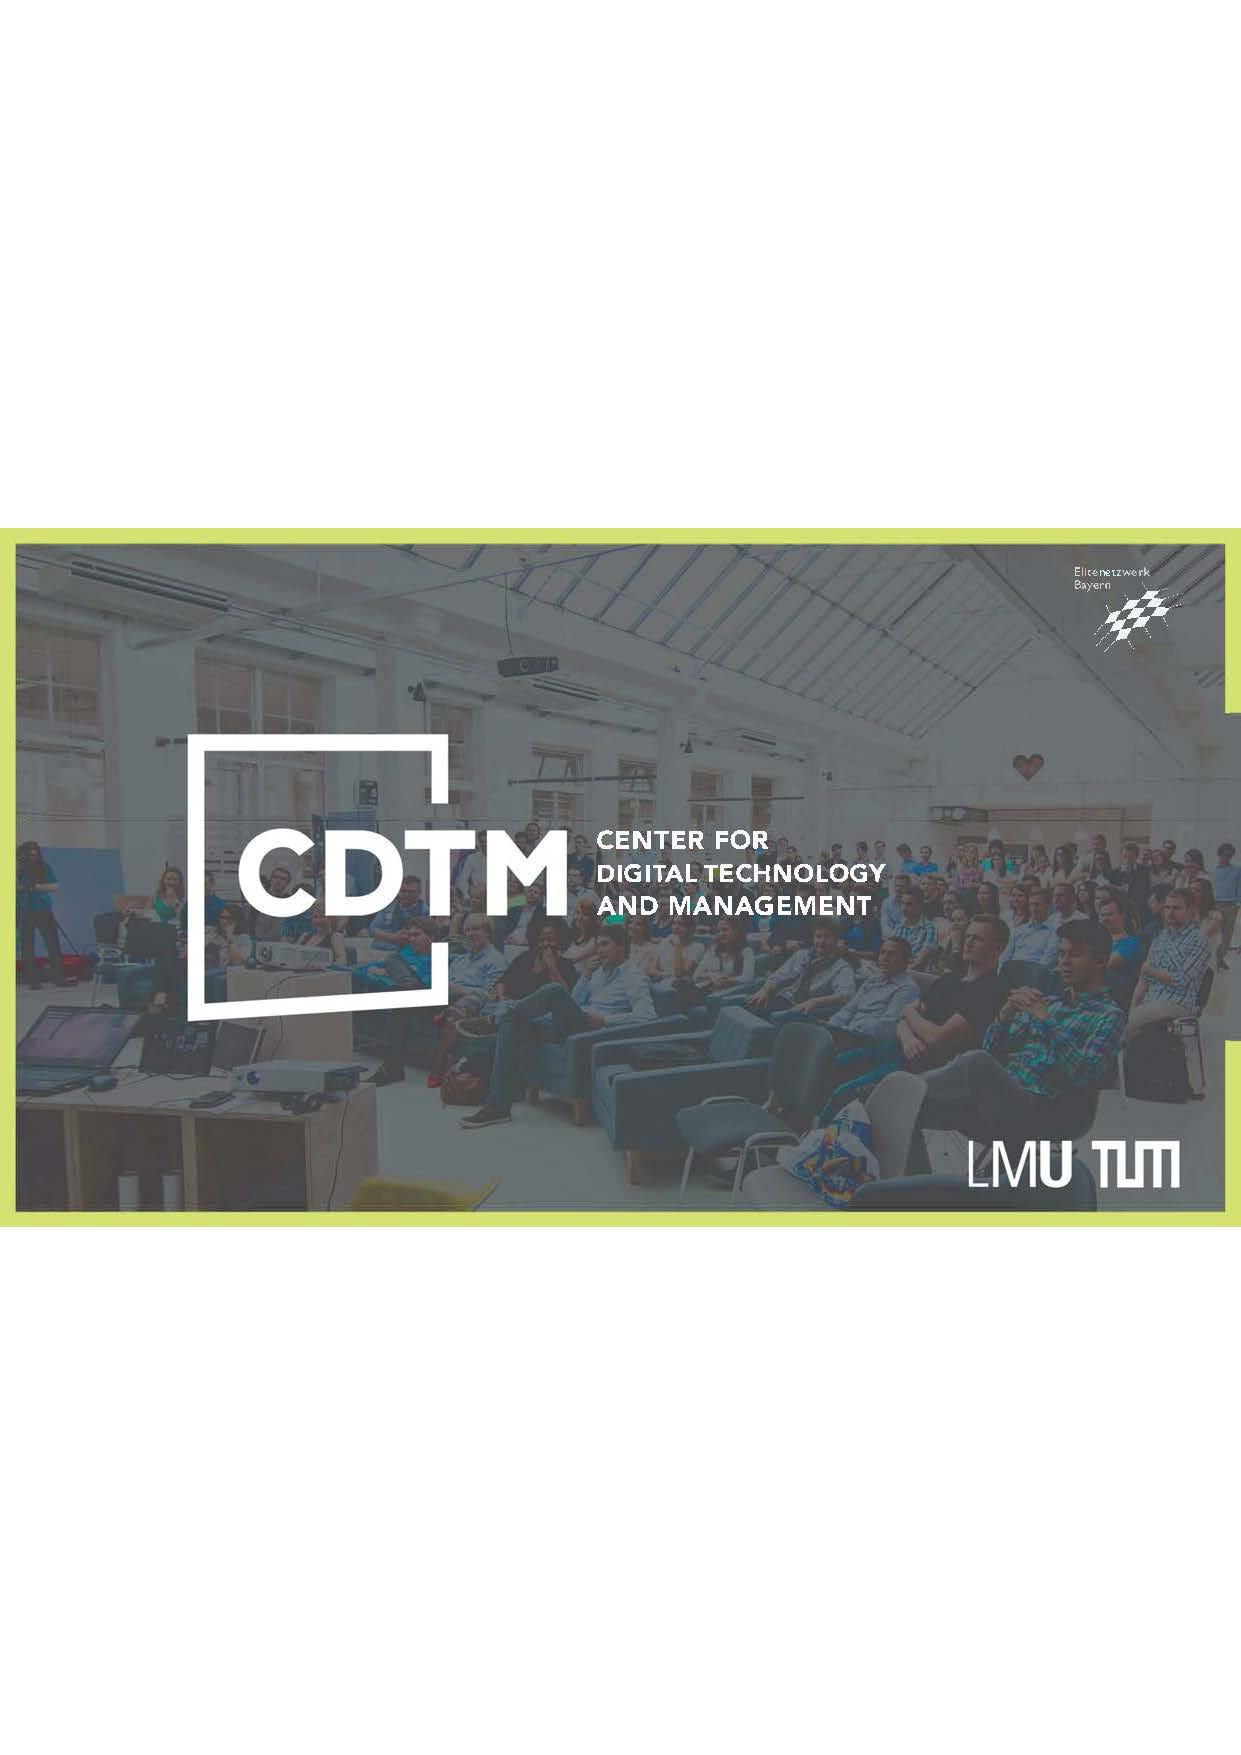 Welcome to CDTM